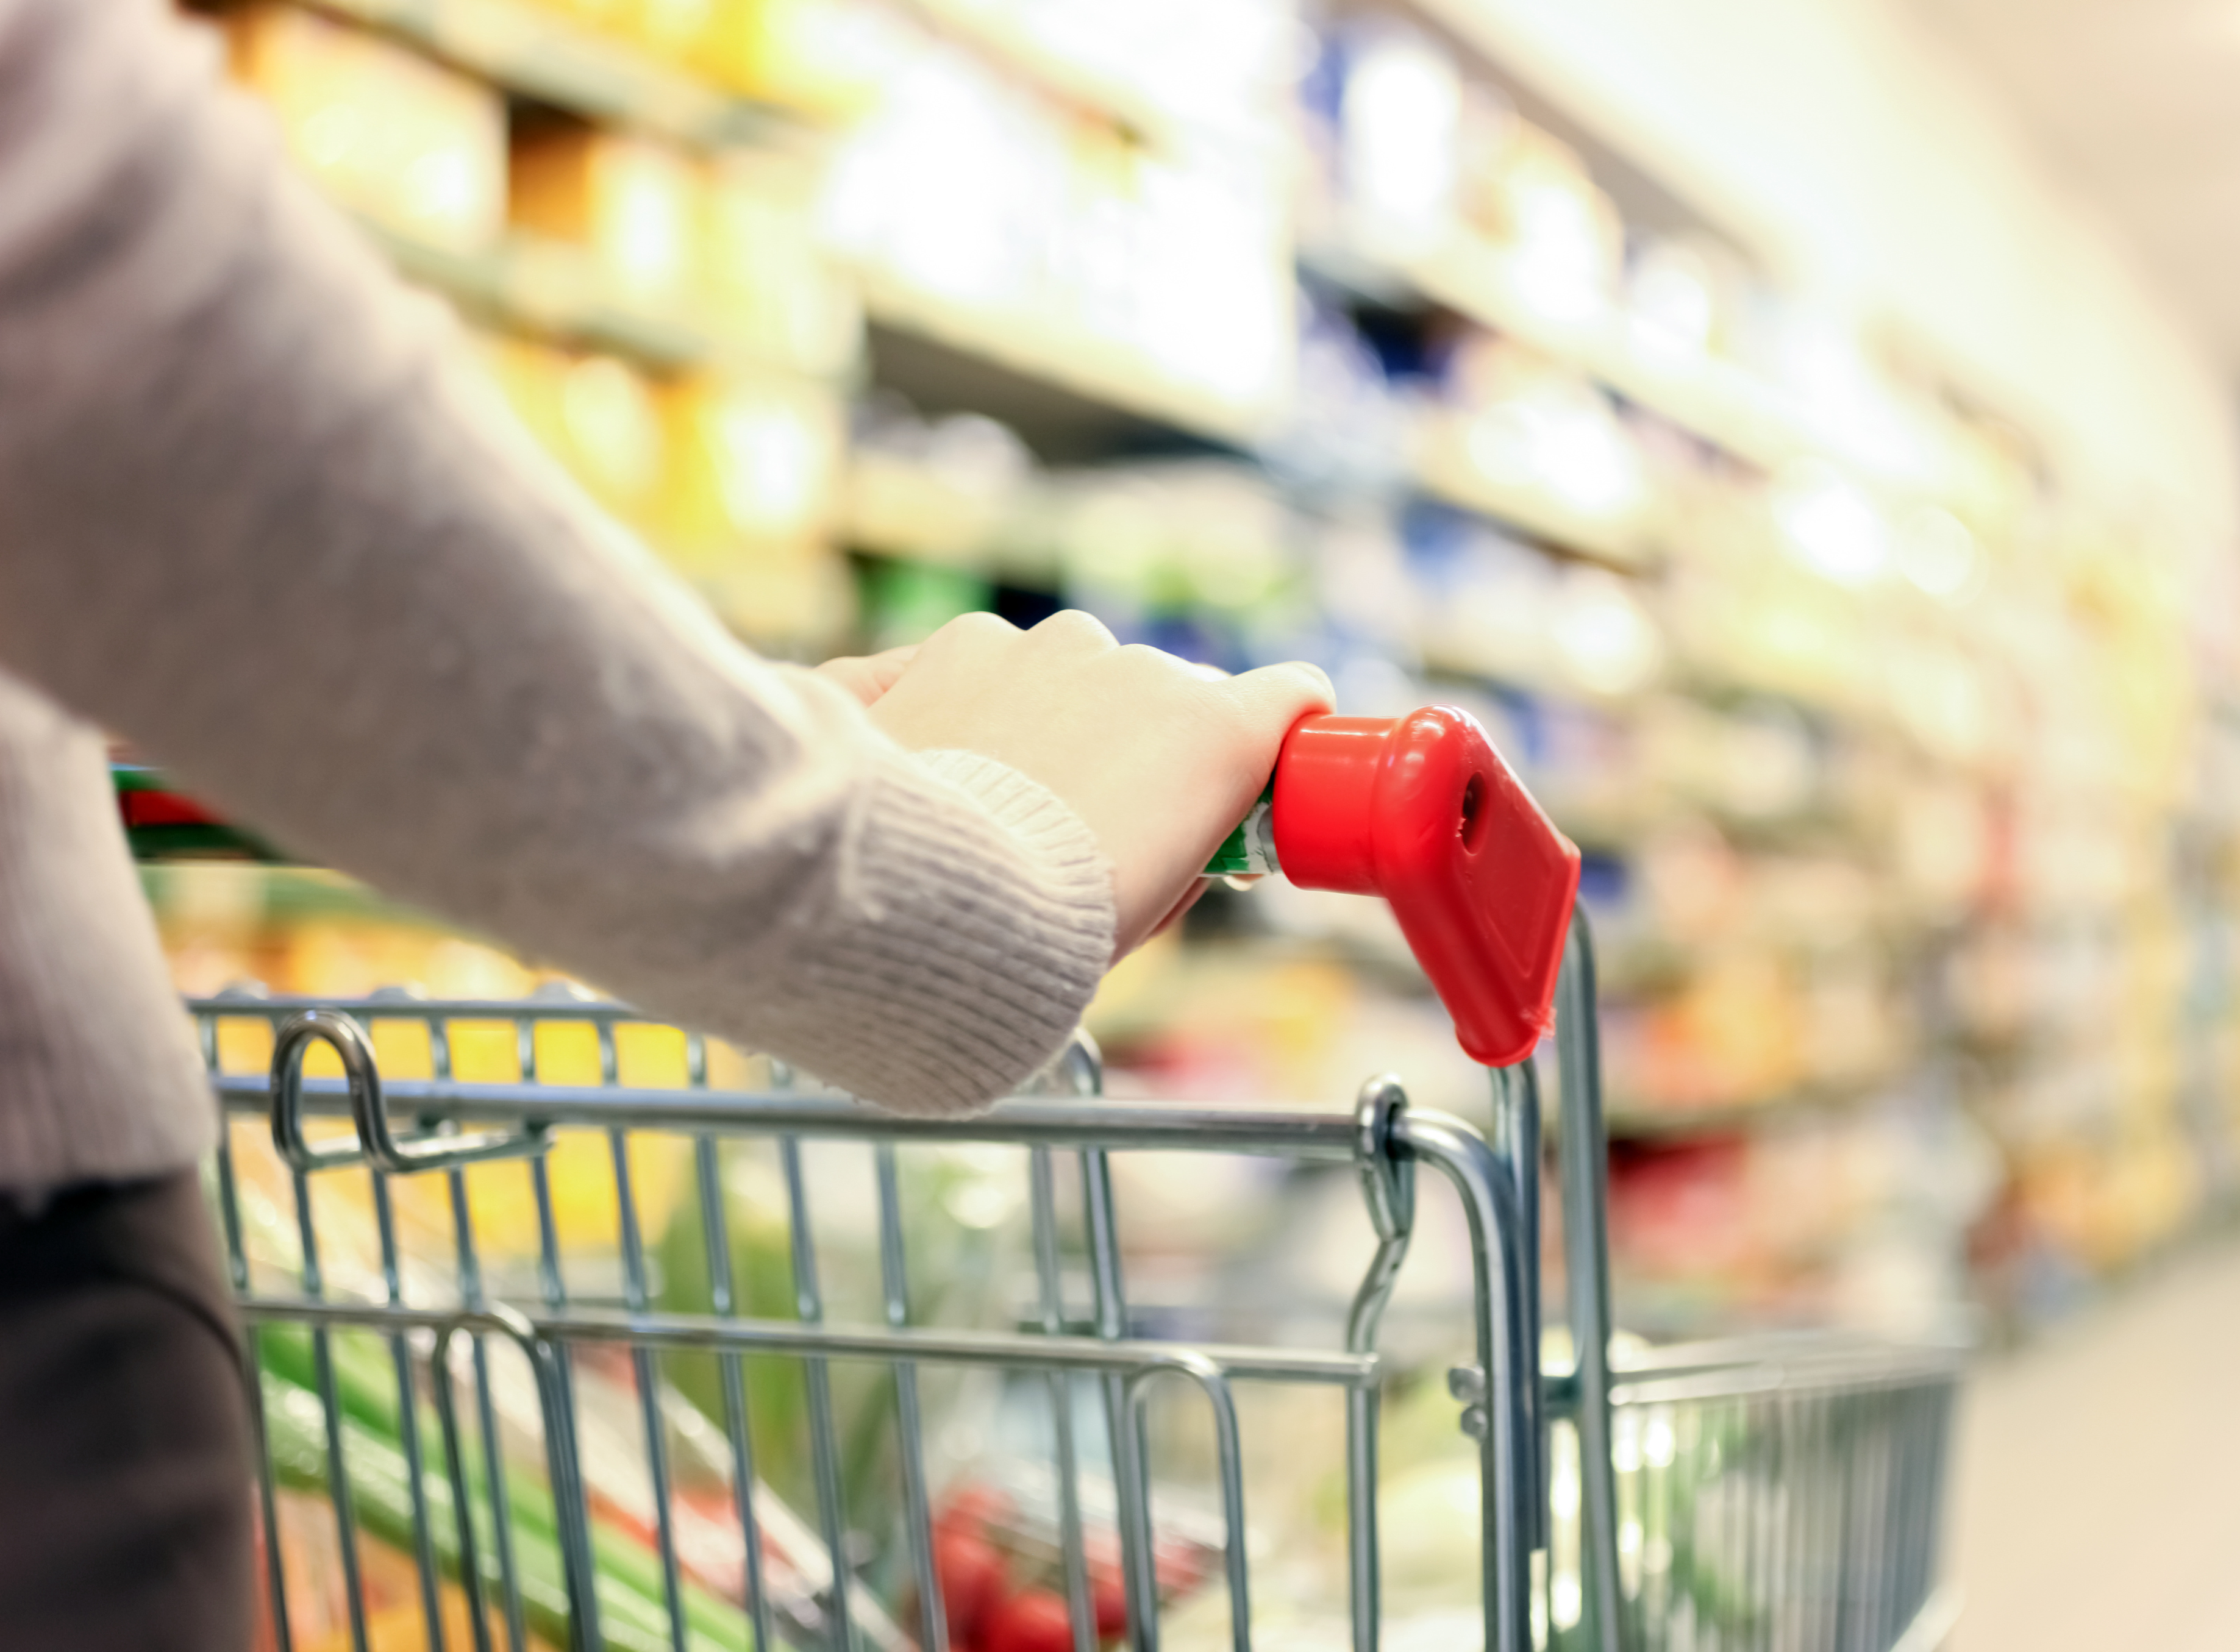 Don't get caught in long grocery lines